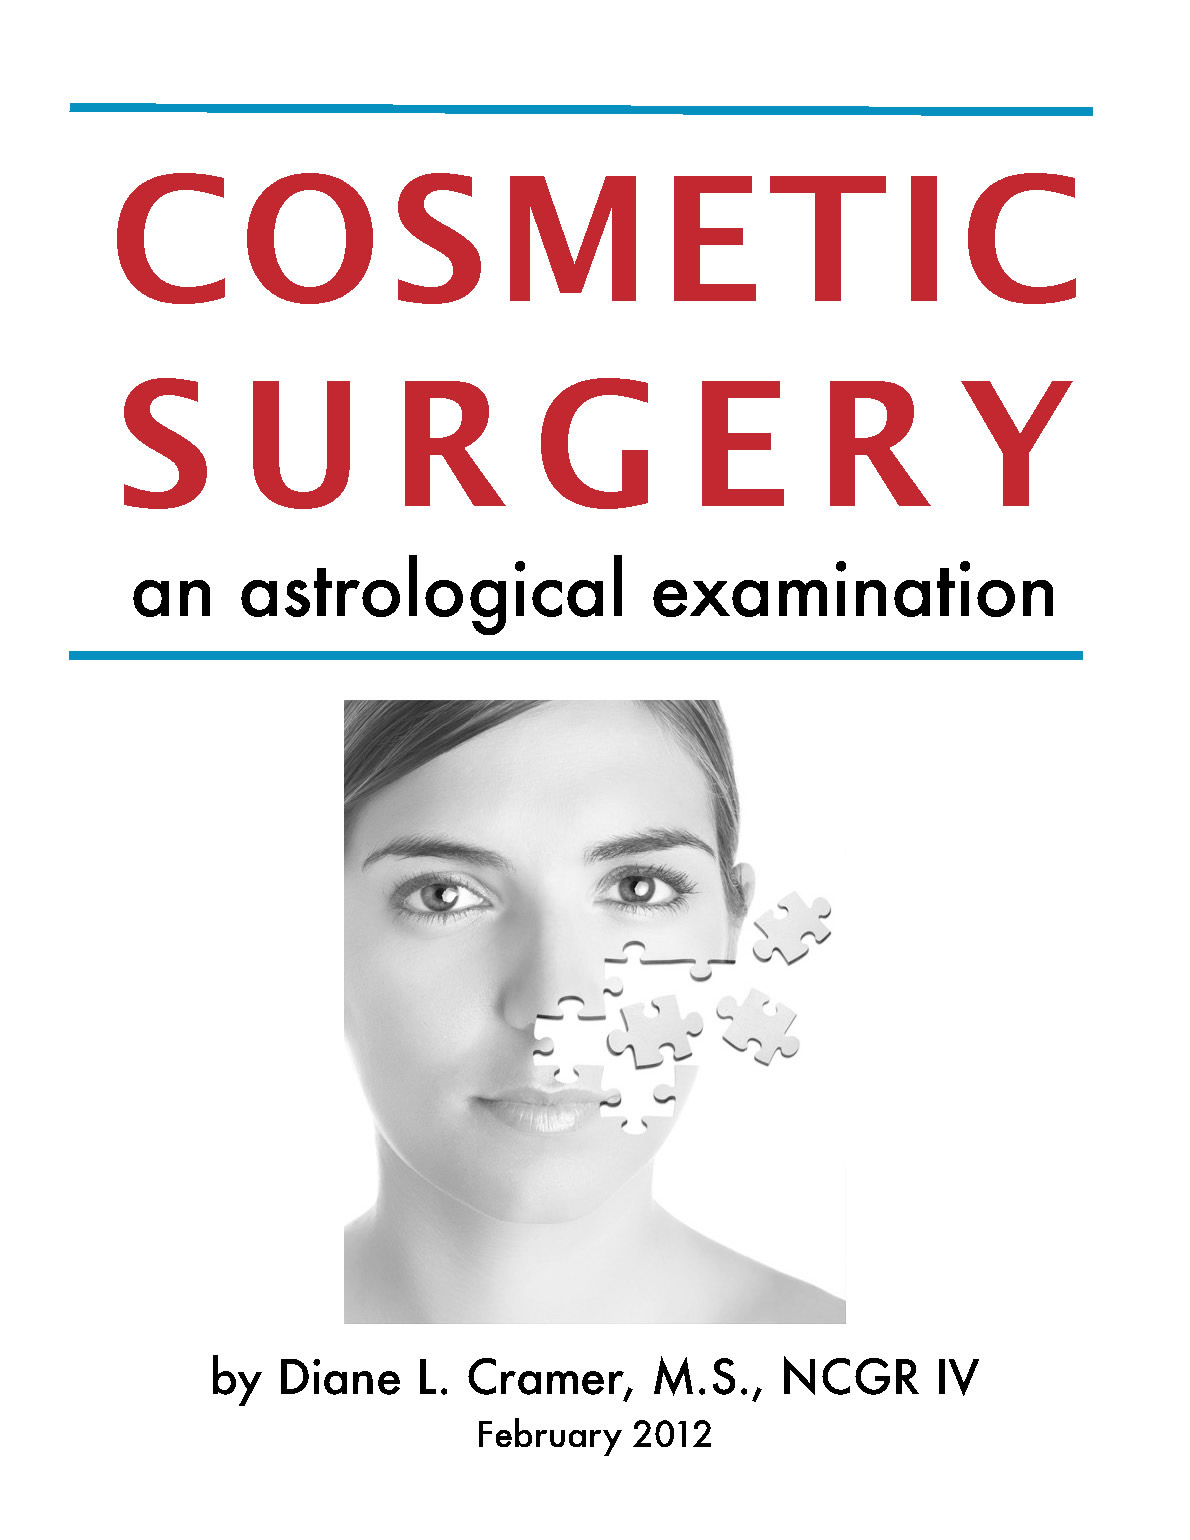 Cosmetic Surgery - An Astrological Examination